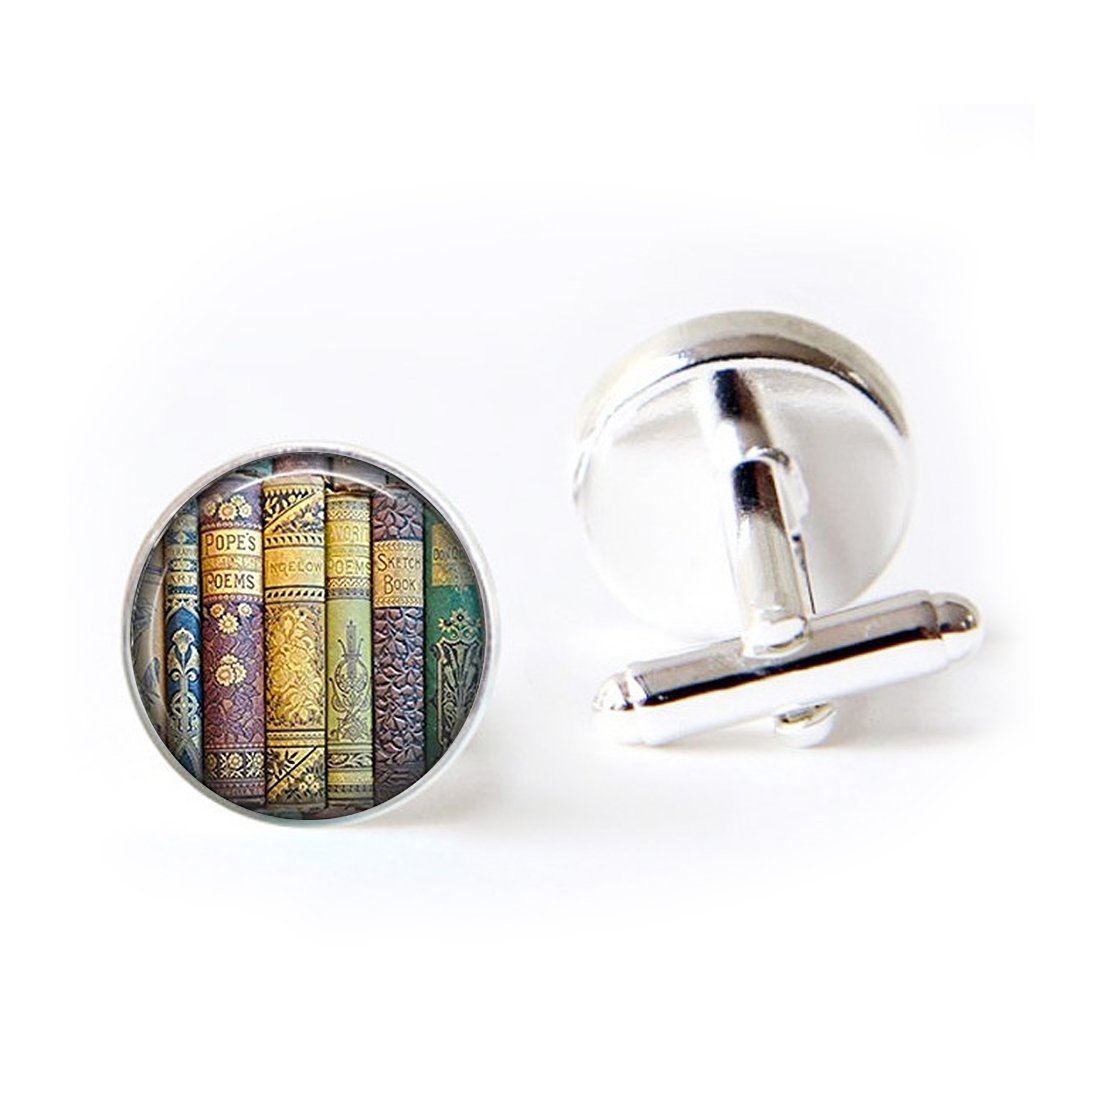 Unique Round Cufflinks Set Book Pendant Love Literary Bookworm Glass Cuff Dress Shirt Links Wedding Business Anniversary Gift for Him